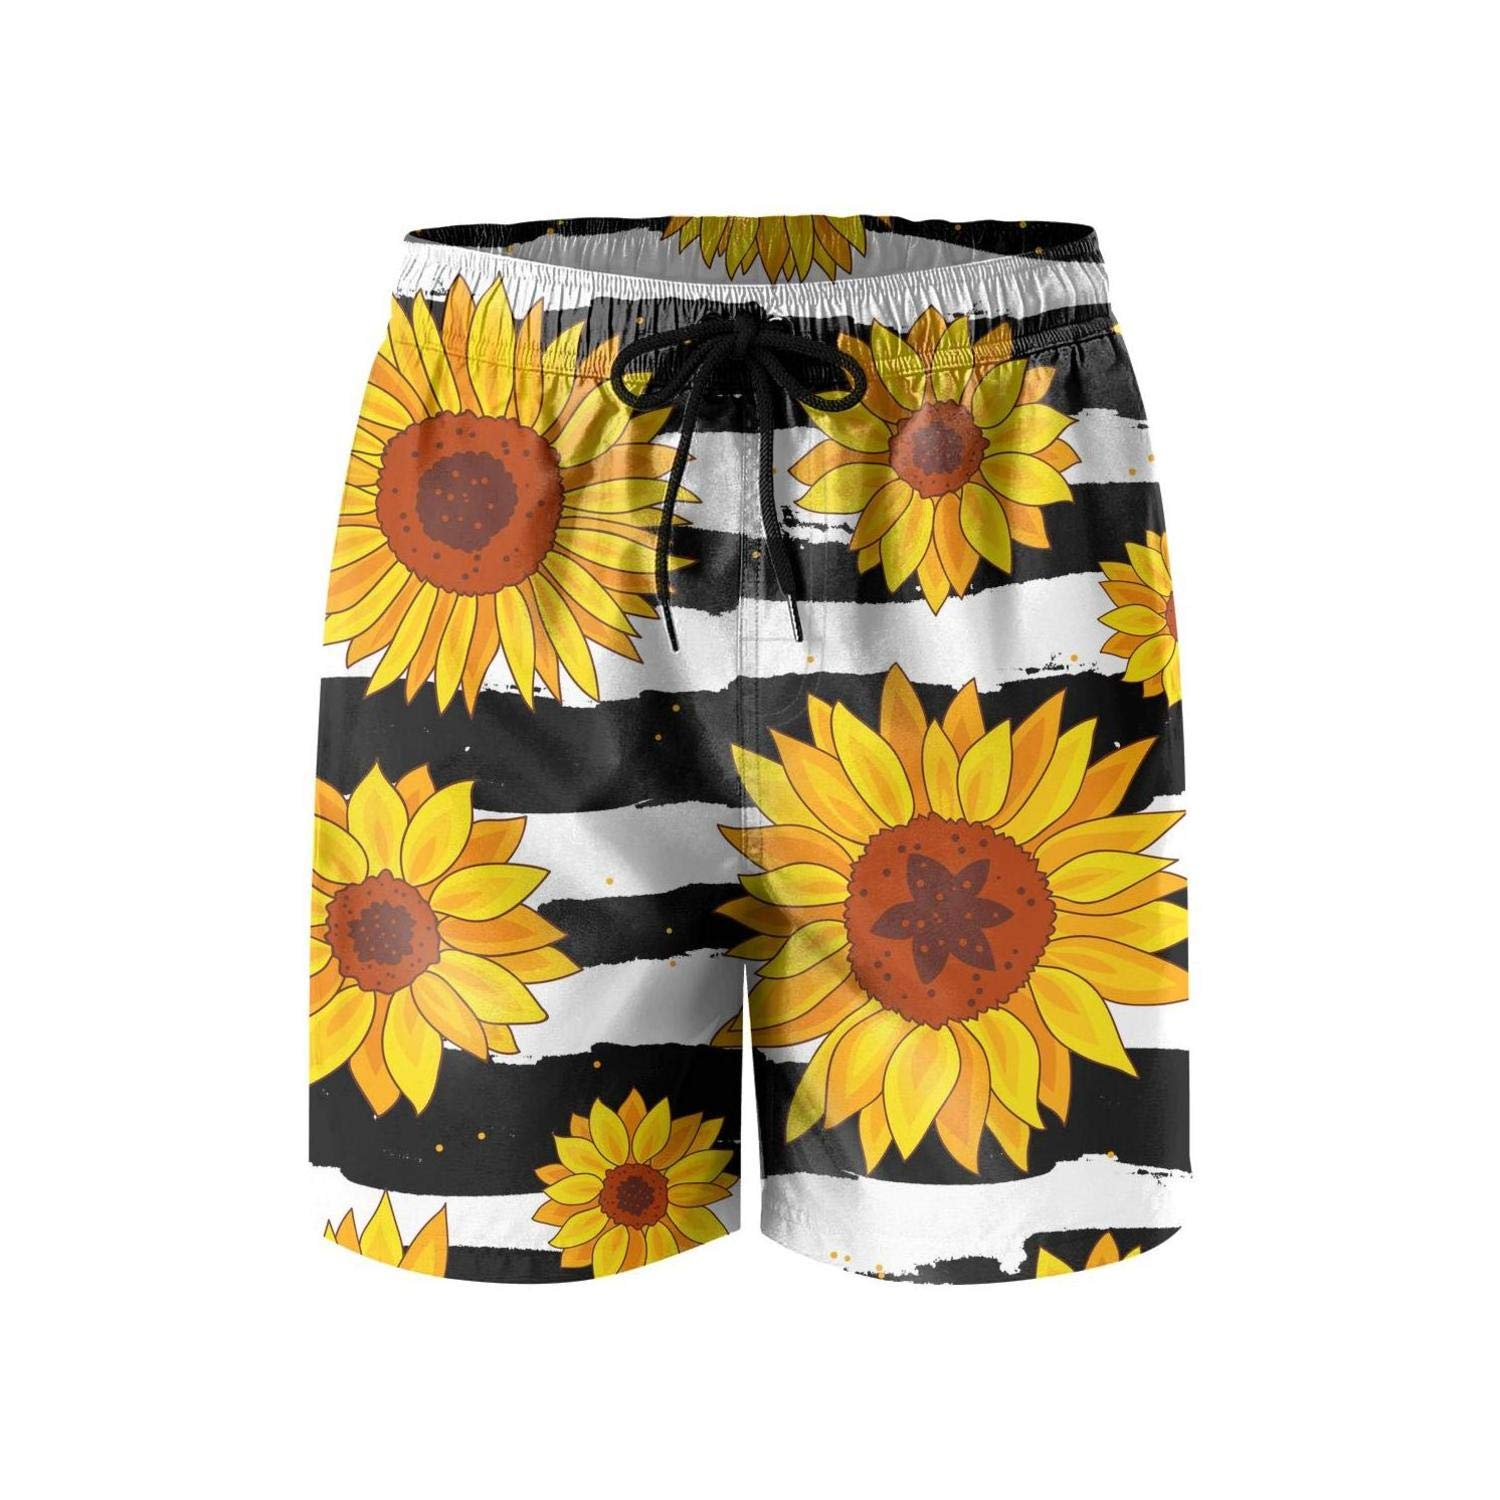 TopCrazy Sunflowers Striped Black and White Board Shorts for Men Summer Fashion Swim Trunks